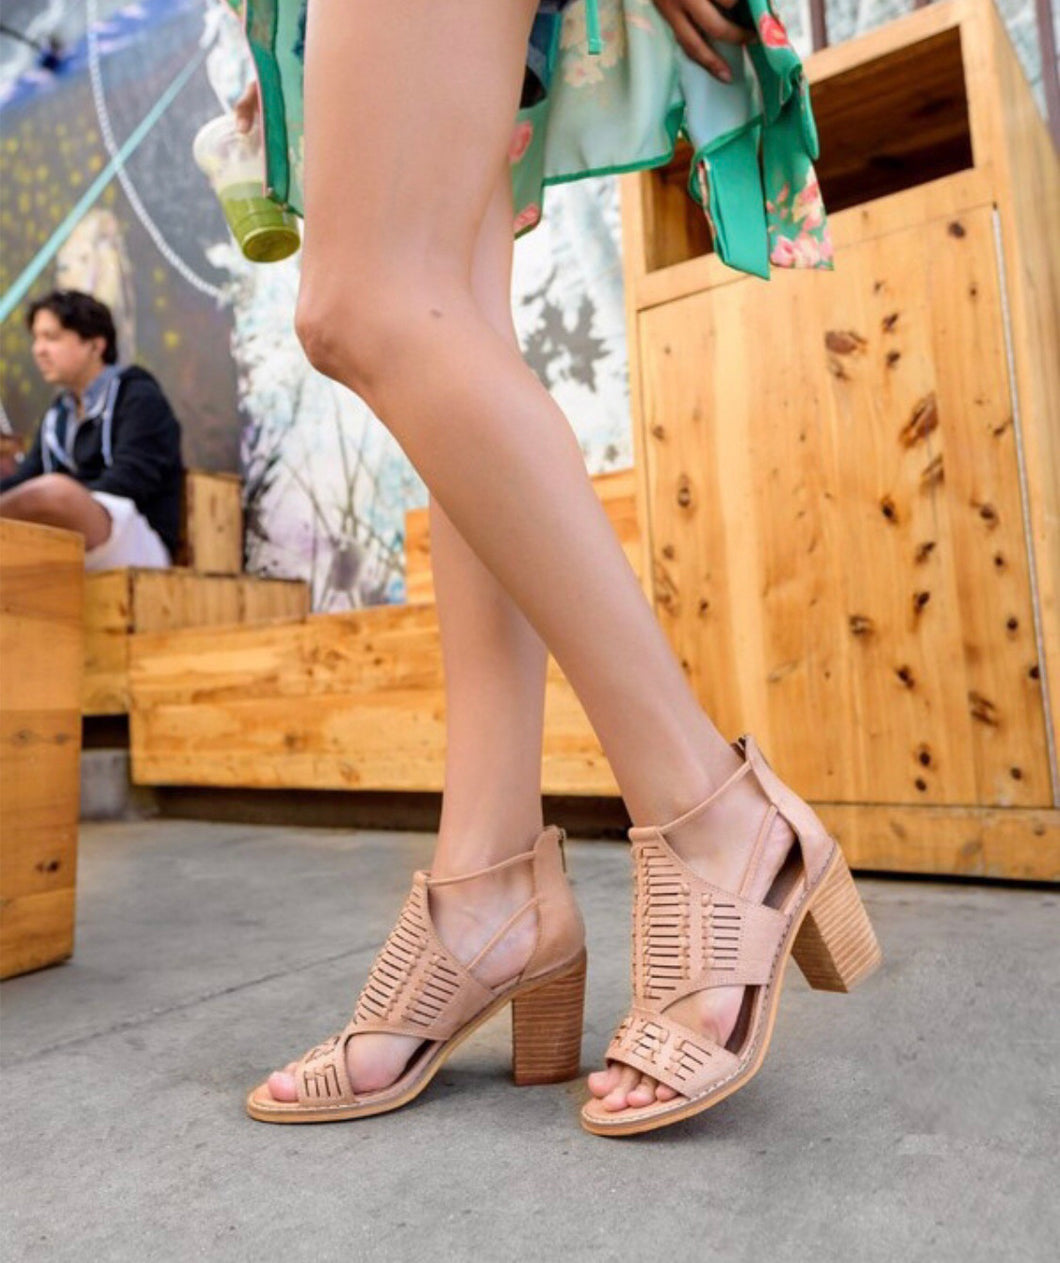 SANDAL MICROFIBER SOFT LEATHER SHOES STYLE CALIFORNIAN BLOCK HEEL